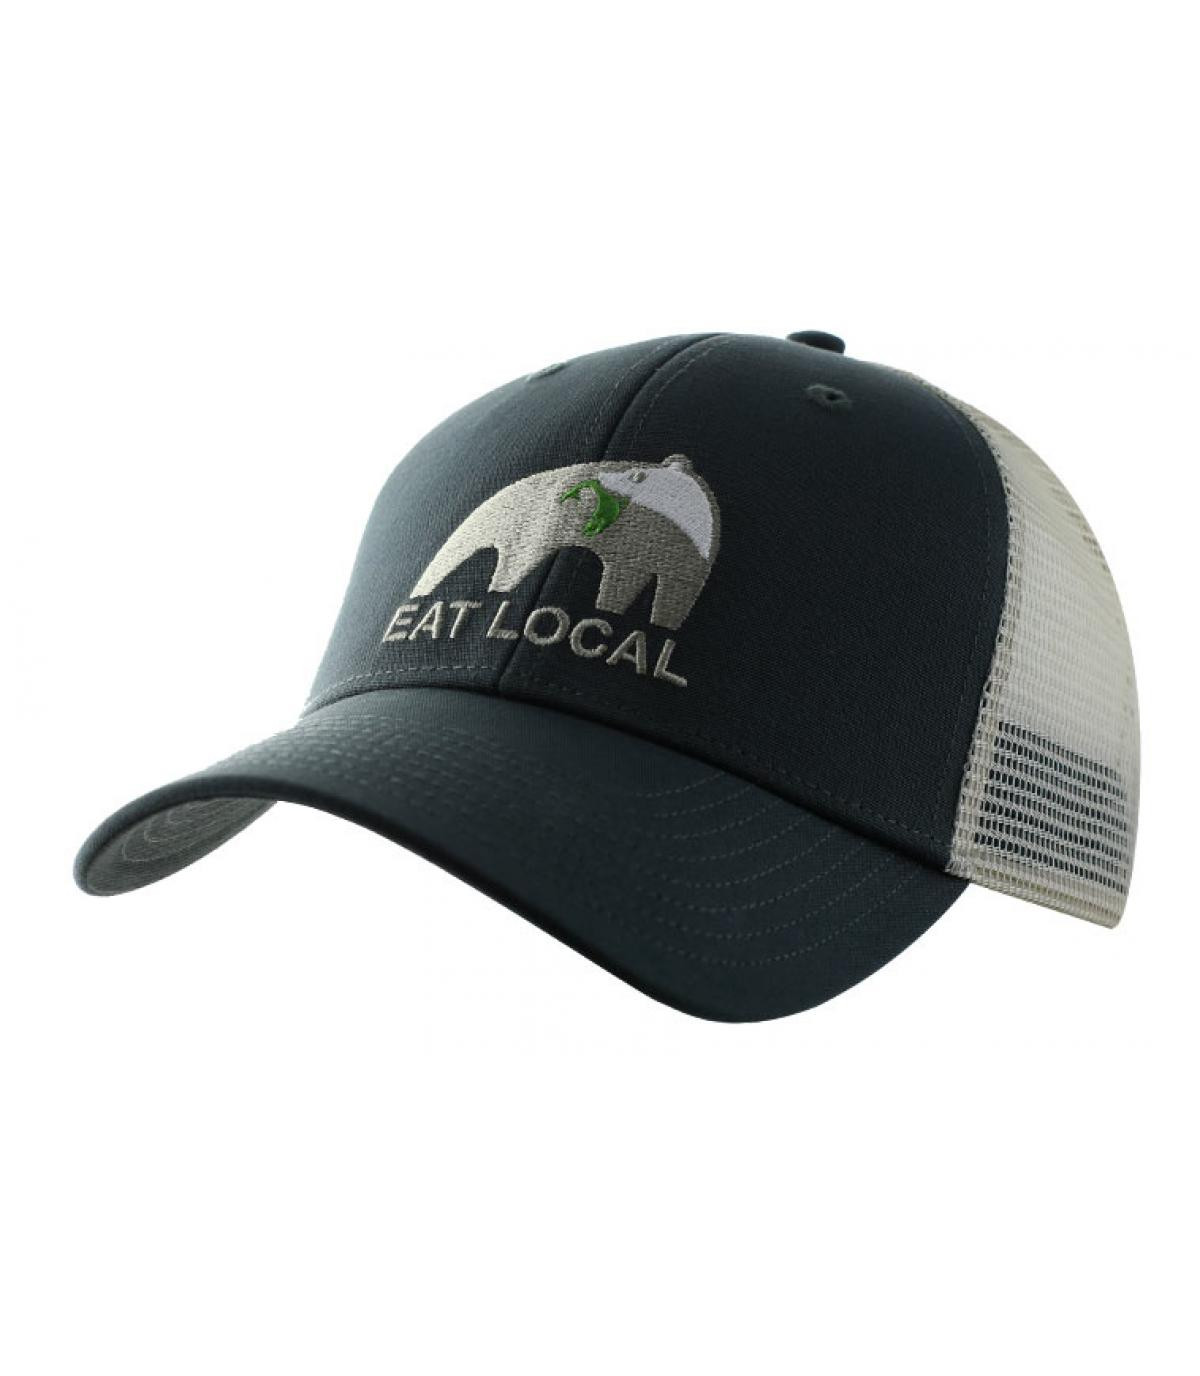 55e4fc98b Patagonia Eat Local cap - Eat Local Trucker forge grey by Patagonia ...